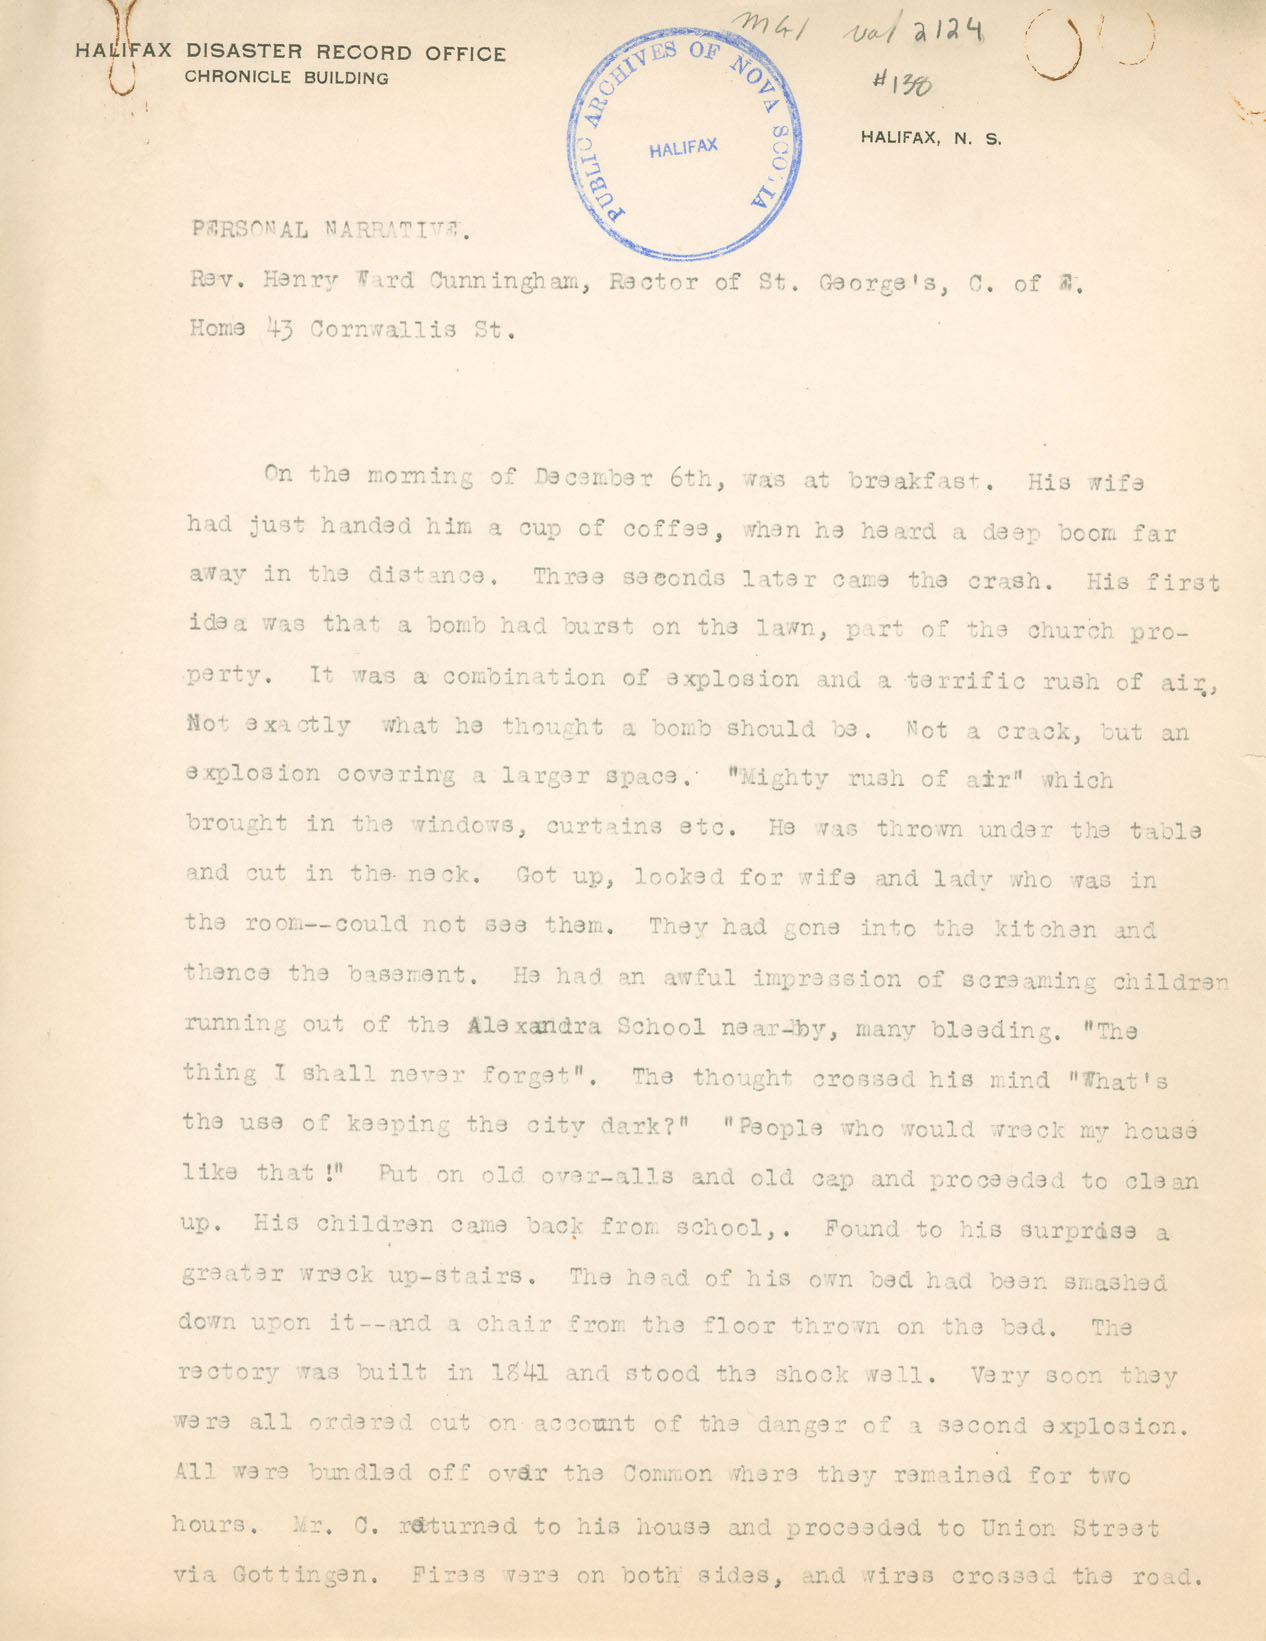 Explosion : Personal Narrative given by Rev. H.W. Cunningham, Rector of St. Georges Anglican Church, Halifax to Archibald MacMechan, Director, Halifax D